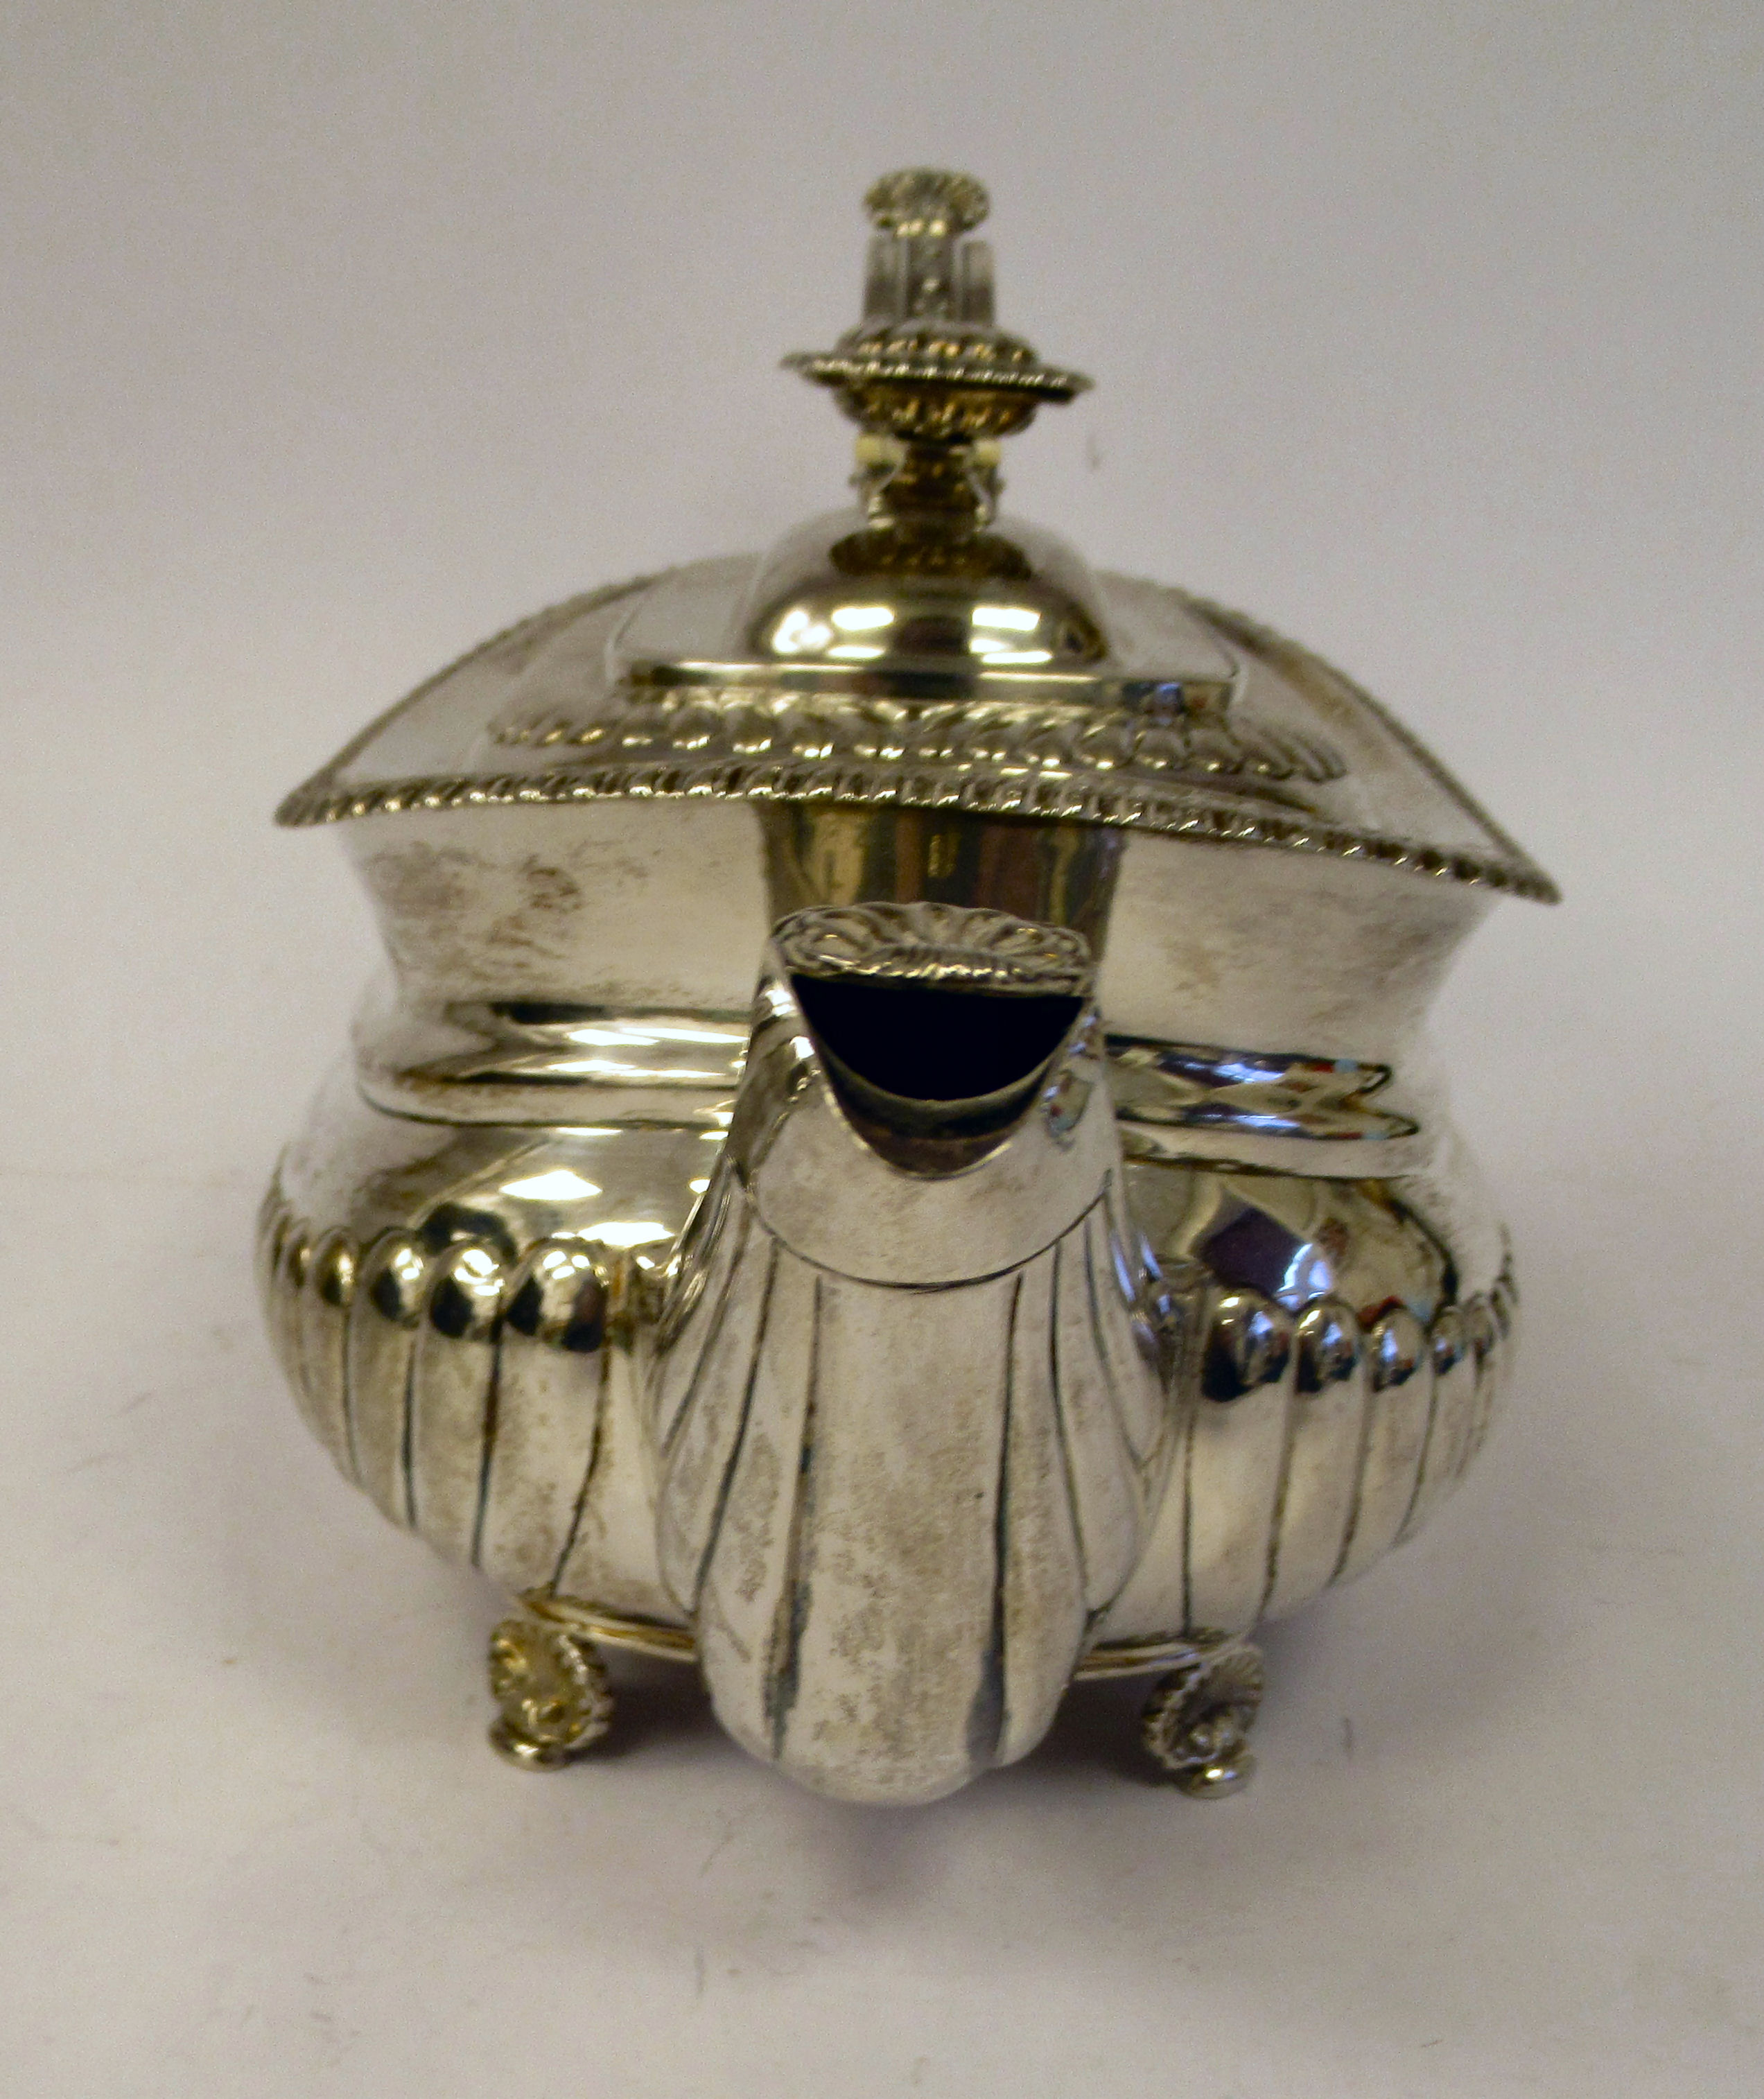 A George III silver teapot of squat, bulbous circular form with floral and foliate cast ornament, - Image 2 of 7